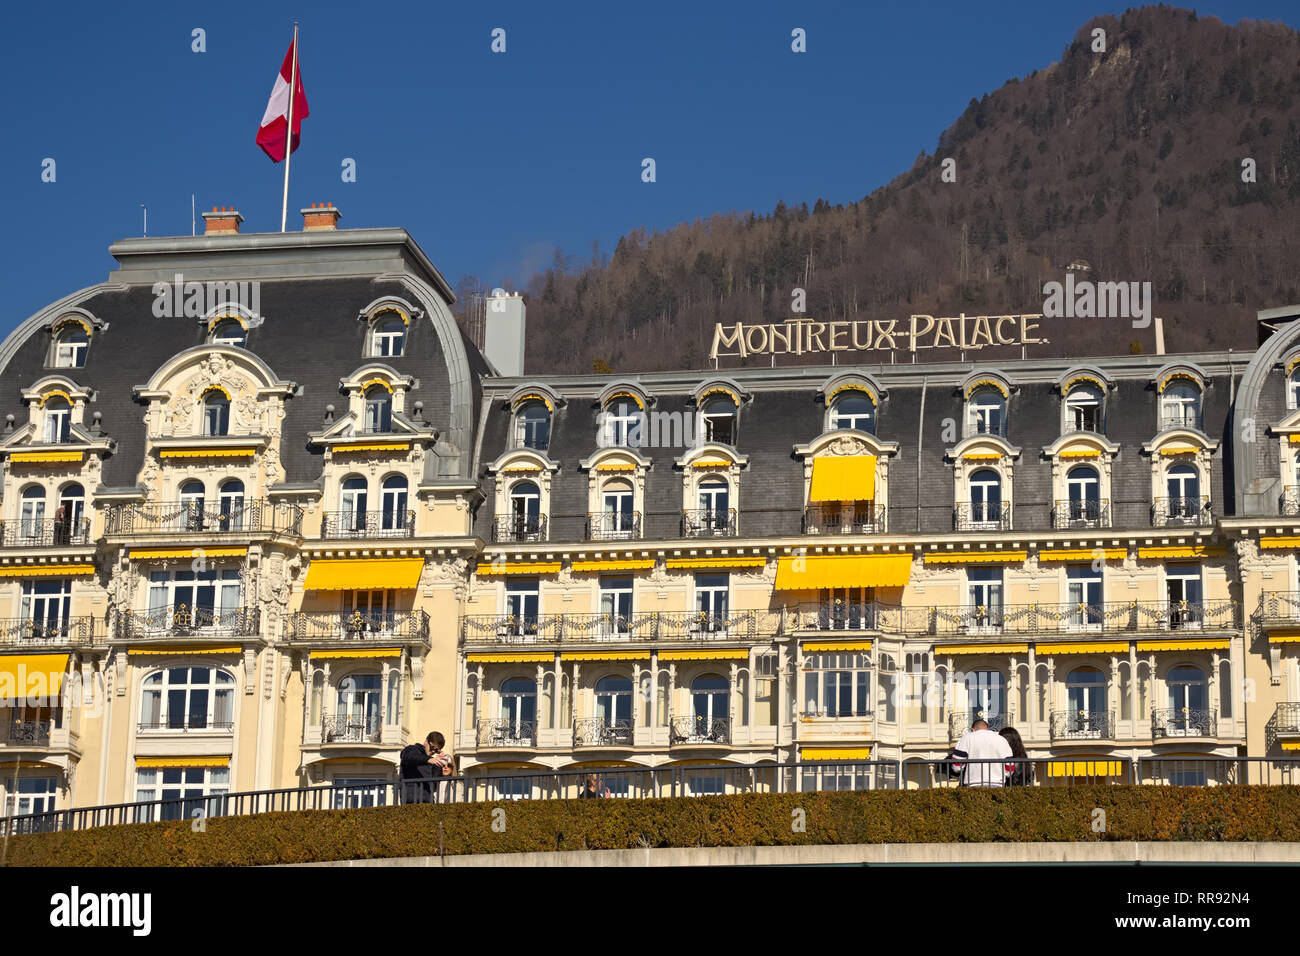 Montreux, Switzerland - 02 17, 2019: Montreux Palace Hotel, a five star luxury hotel with mountains in the background. - Stock Image